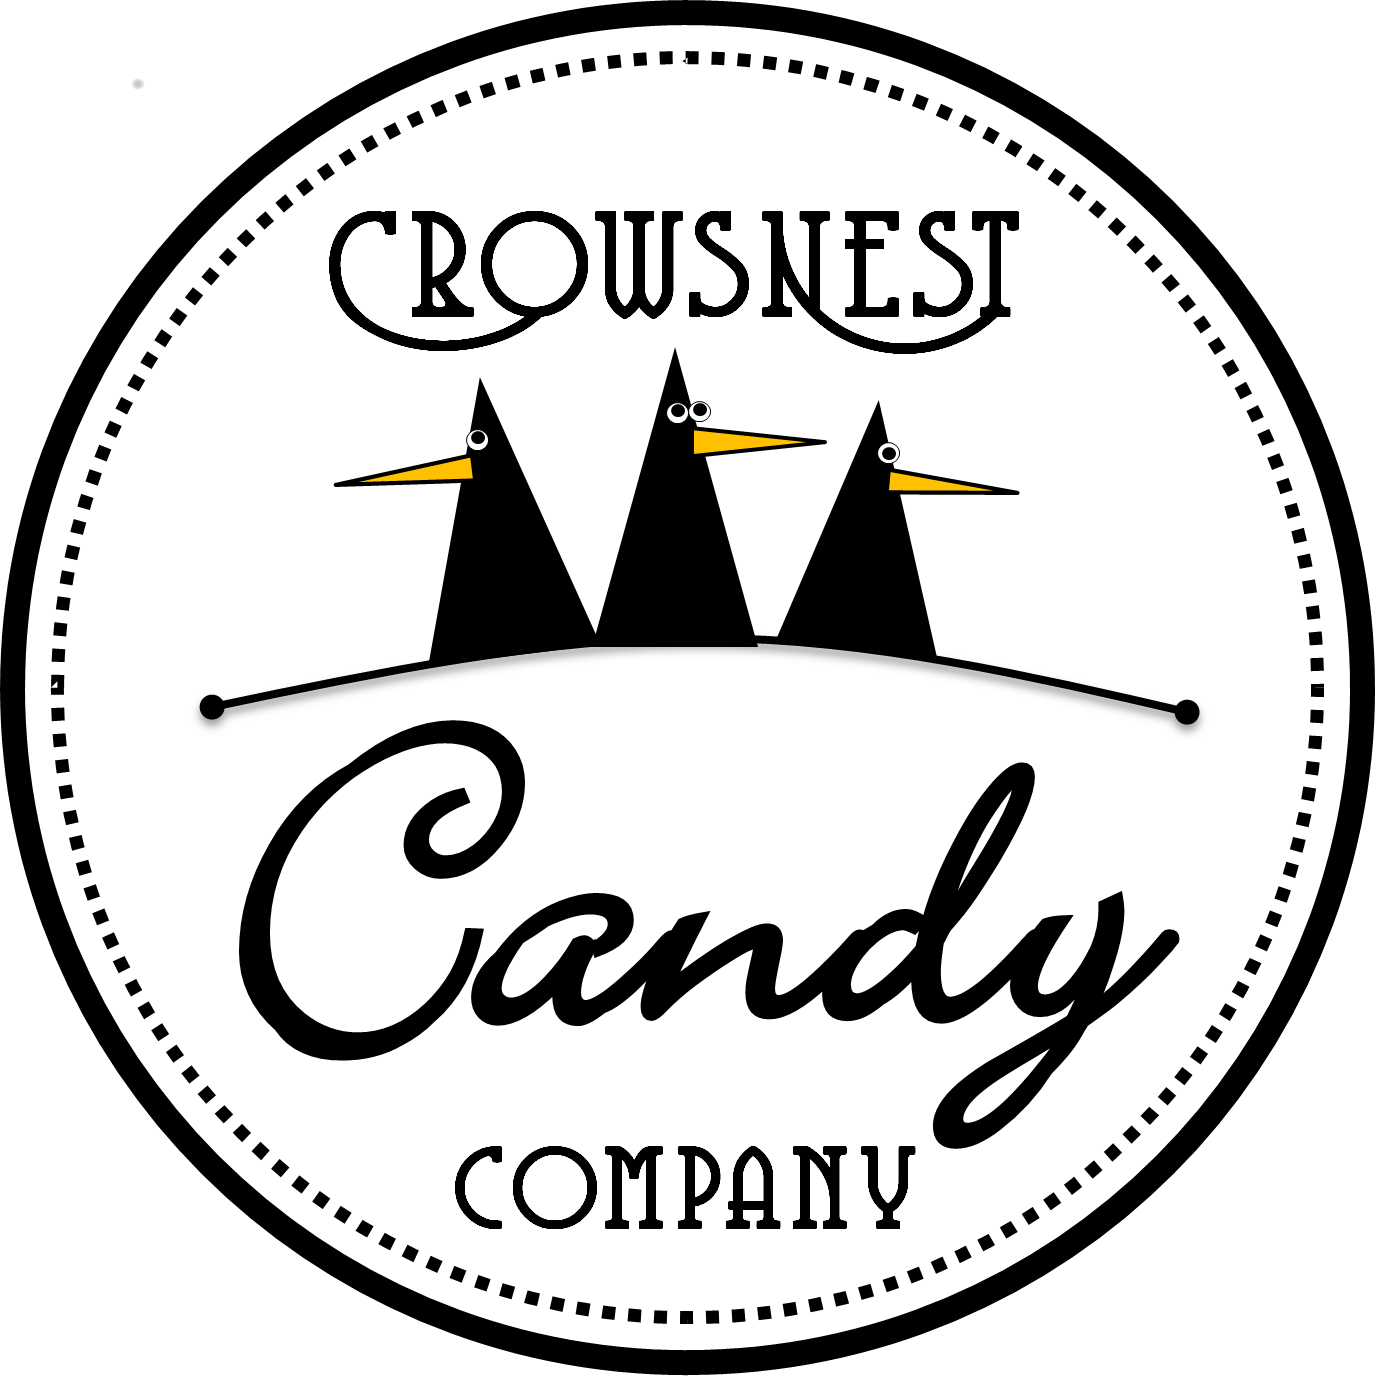 Crowsnest Candy Company